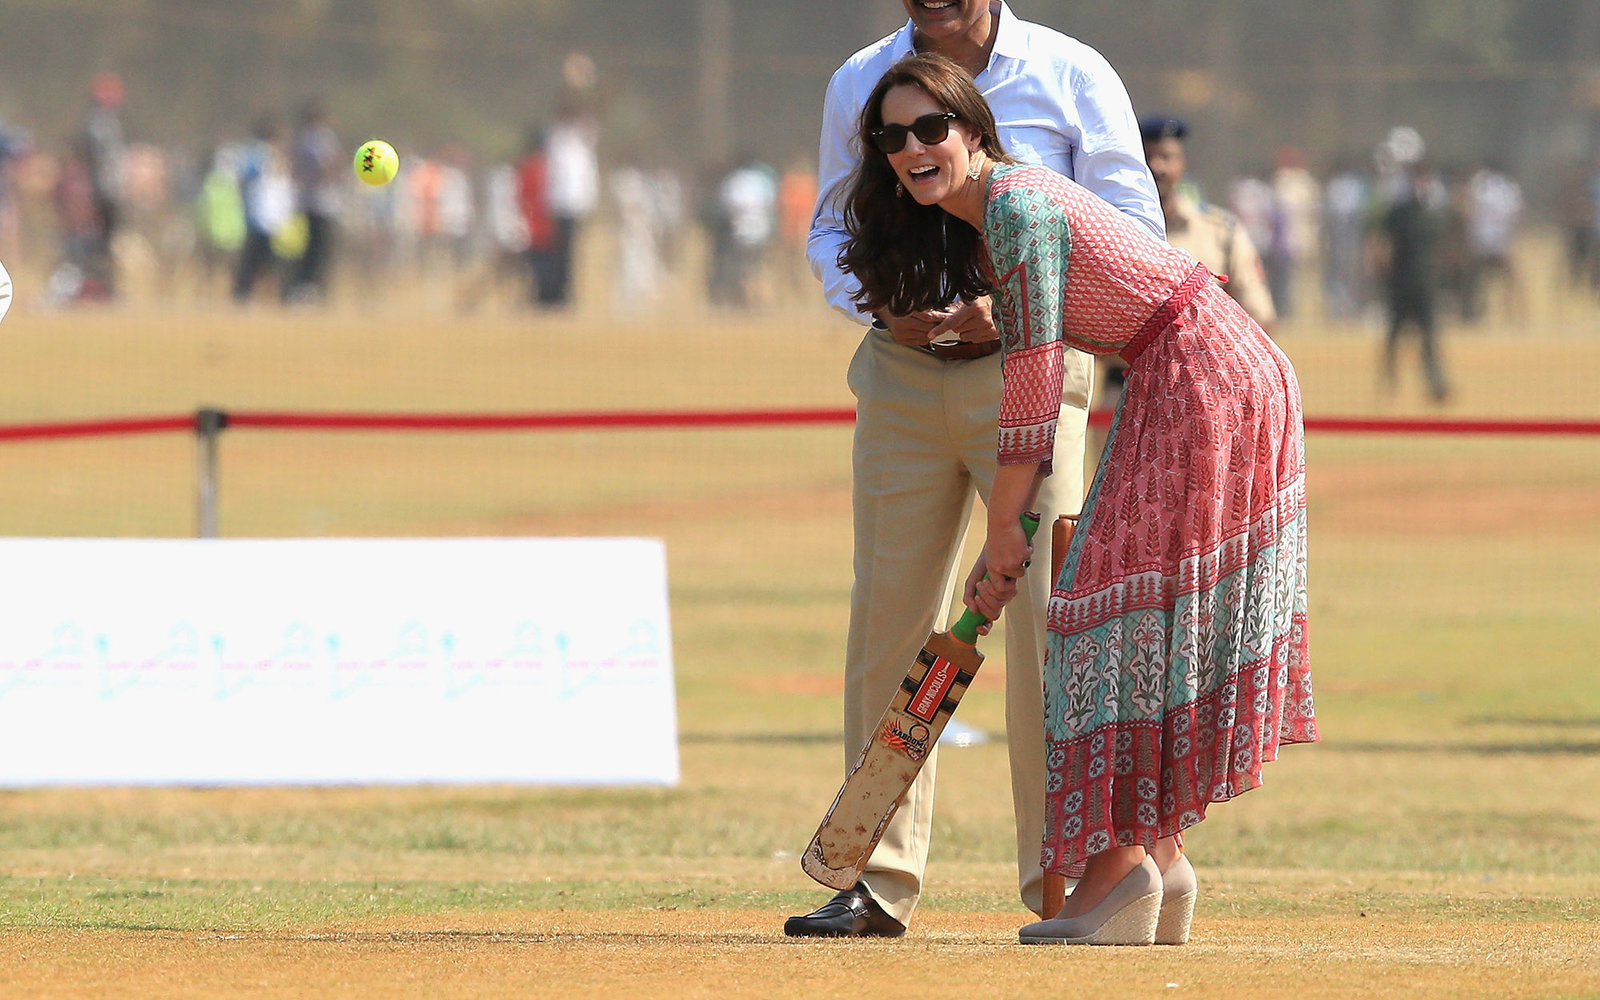 MUMBAI, INDIA - APRIL 10:  Catherine, Duchess of Cambridge plays cricket during a visit to meet children from Magic Bus, Childline and Doorstep, three non-governmental organizations, at Mumbai's iconic recreation ground, the Oval Maidan, during the royal